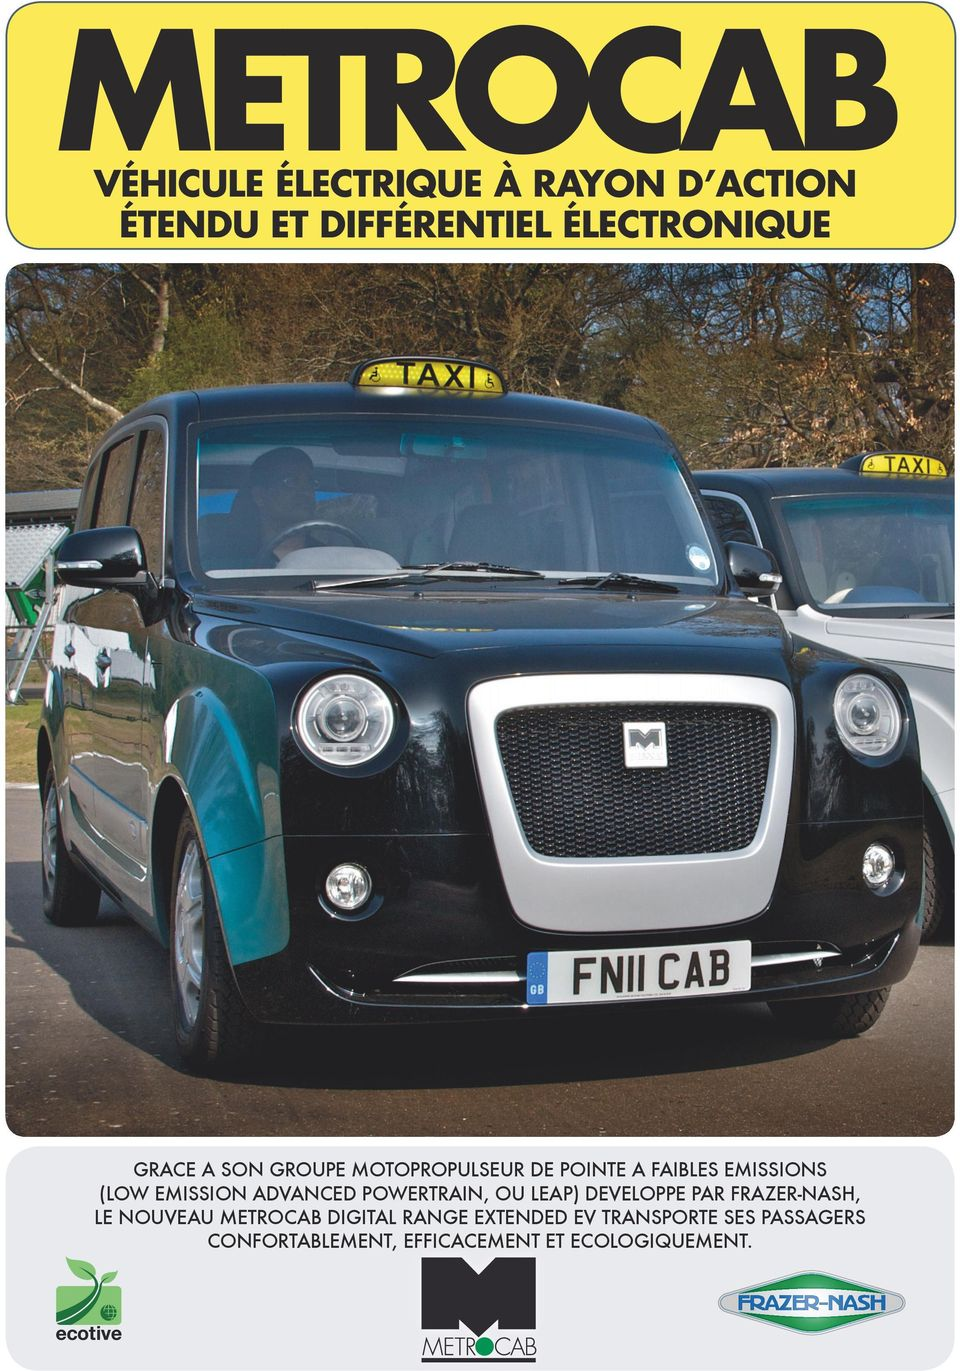 ADVANCED POWERTRAIN, OU LEAP) DEVELOPPE PAR FRAZER-NASH, LE NOUVEAU METROCAB